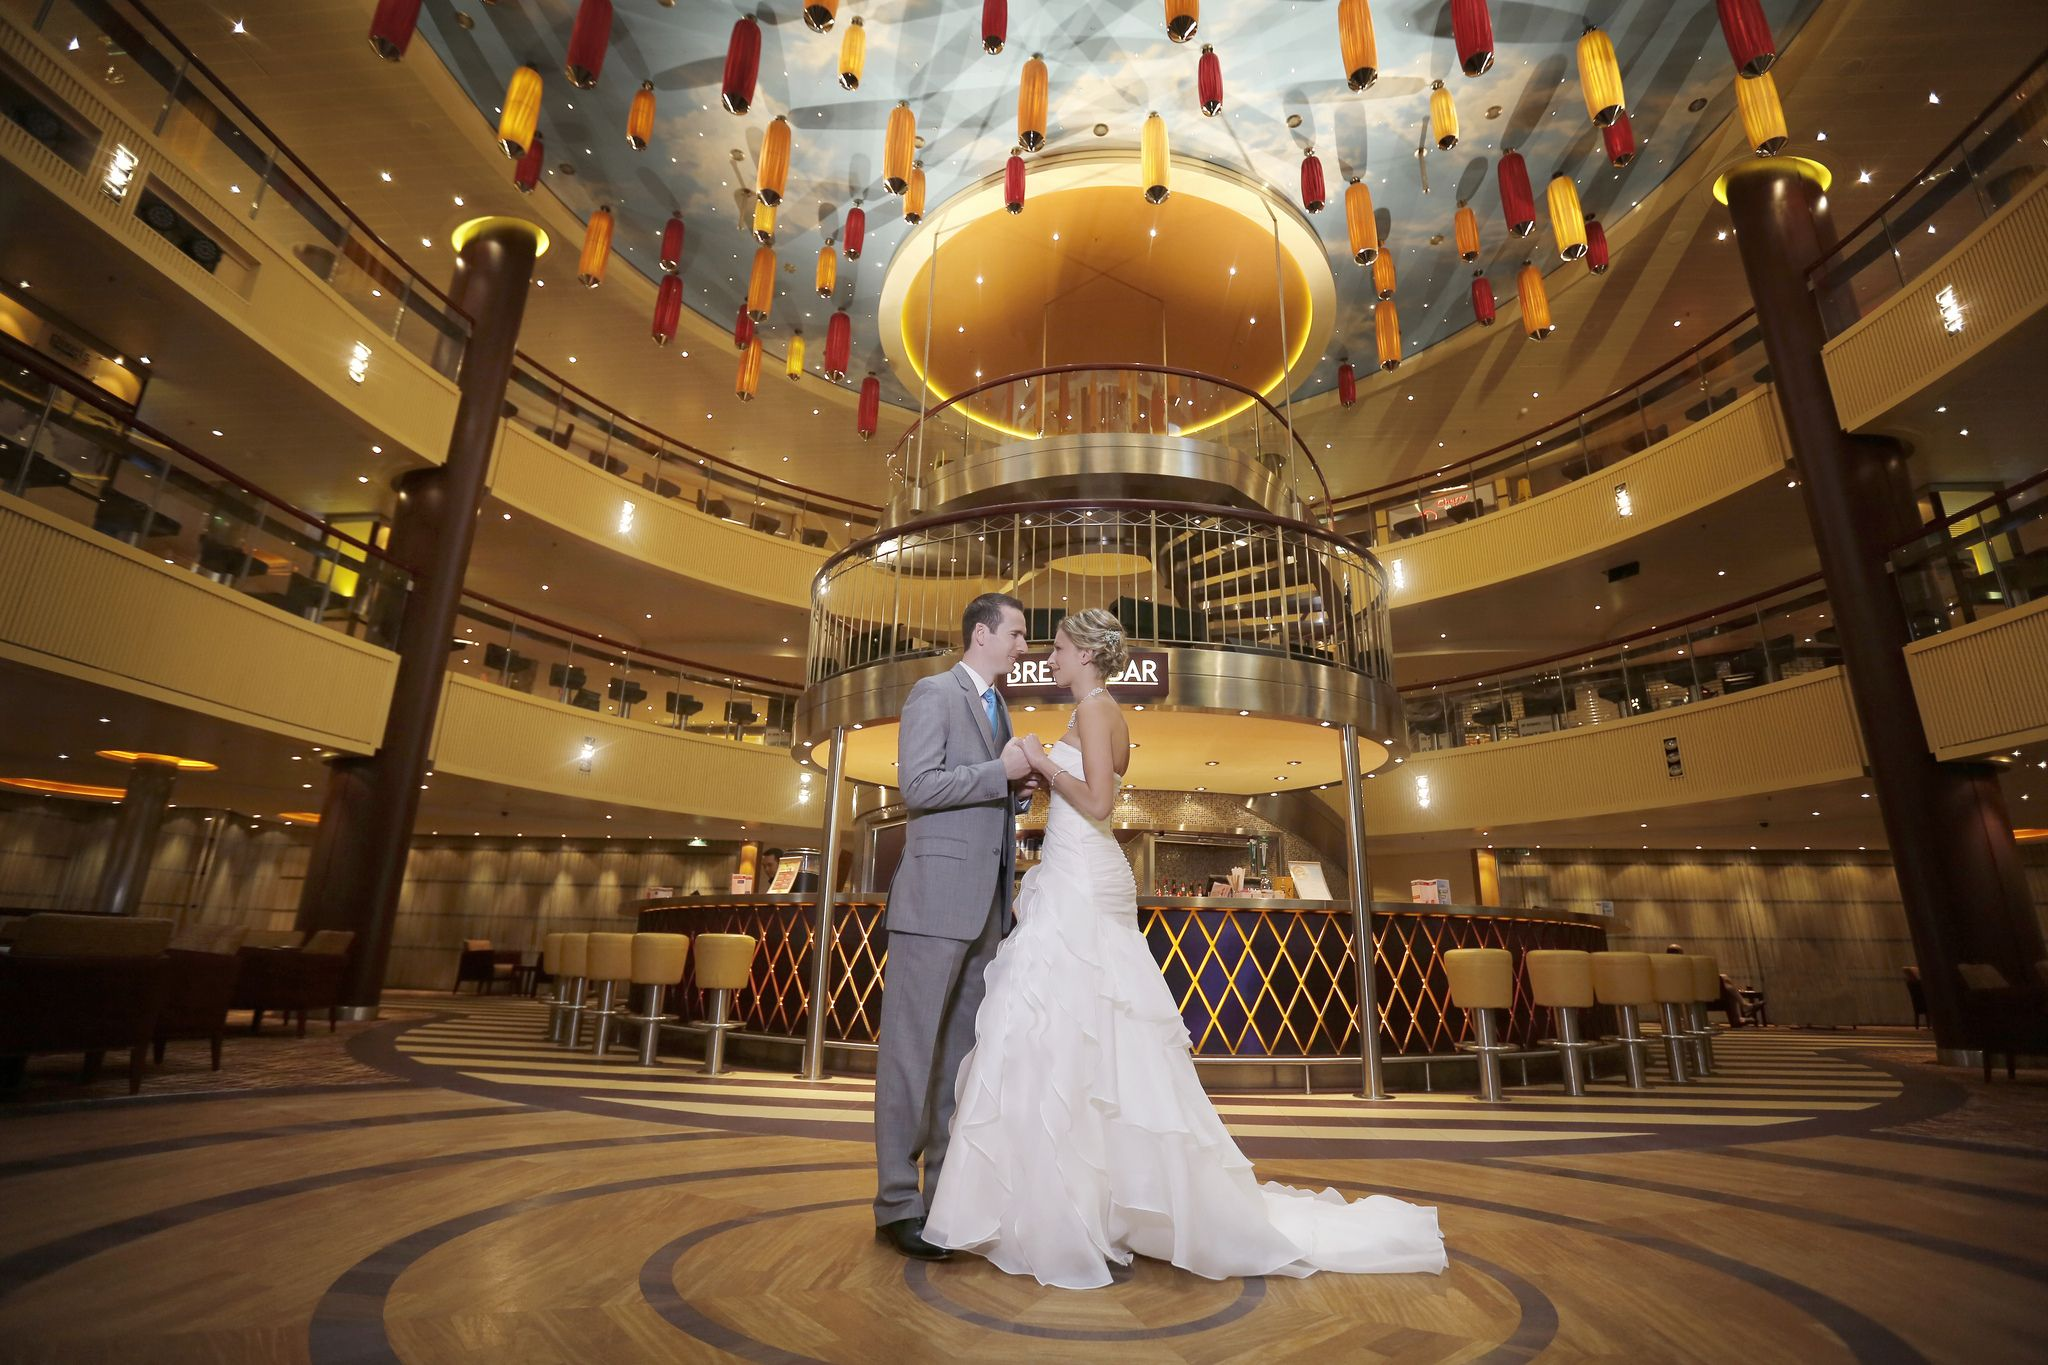 Carnival Cruise Ship Wedding Aboard The Carnival Breeze Kind Of Looks Like The Beauty And Th Cruise Ship Wedding Carnival Cruise Wedding Carnival Inspiration